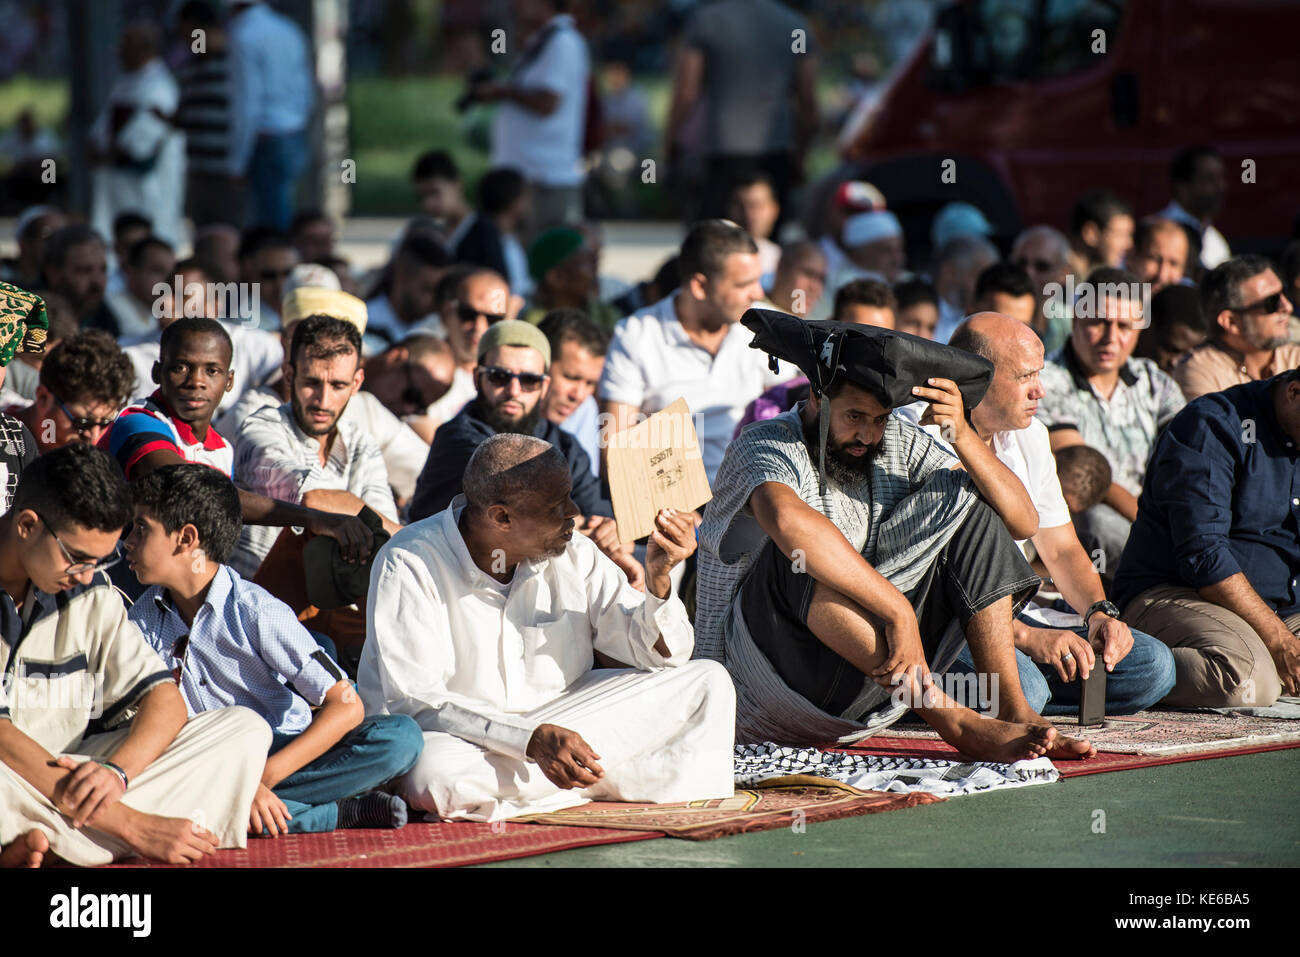 Turin, Italy - September 1, 2017: Islamic Sacrifice Festival at Dora Park in Turin, Italy Stock Photo